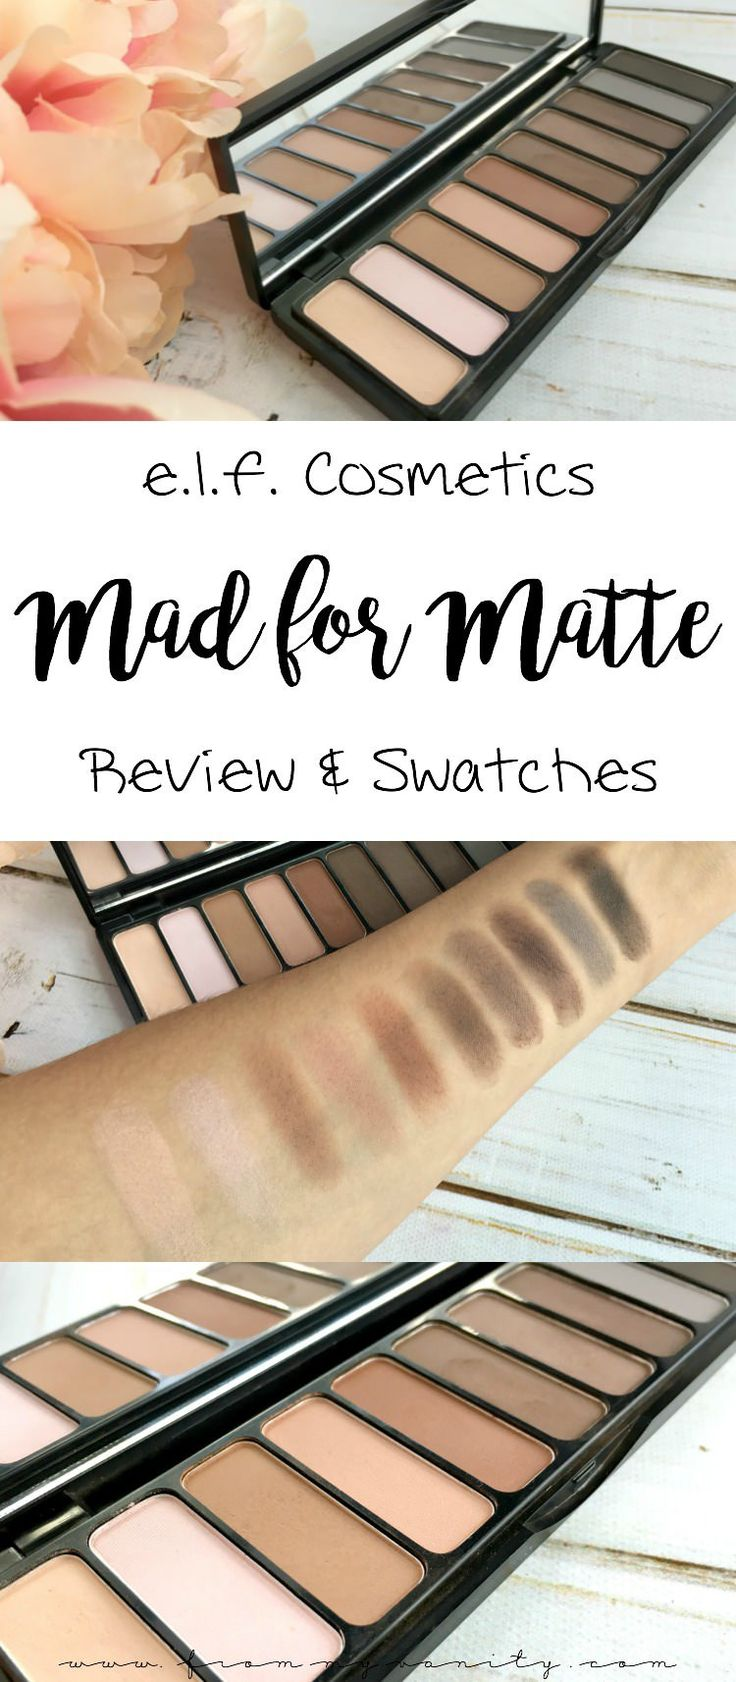 If you keep passing over this palette...I think this review might just change your mind!   E.L.F. Cosmetics' Mad for Matte eyeshadow palette